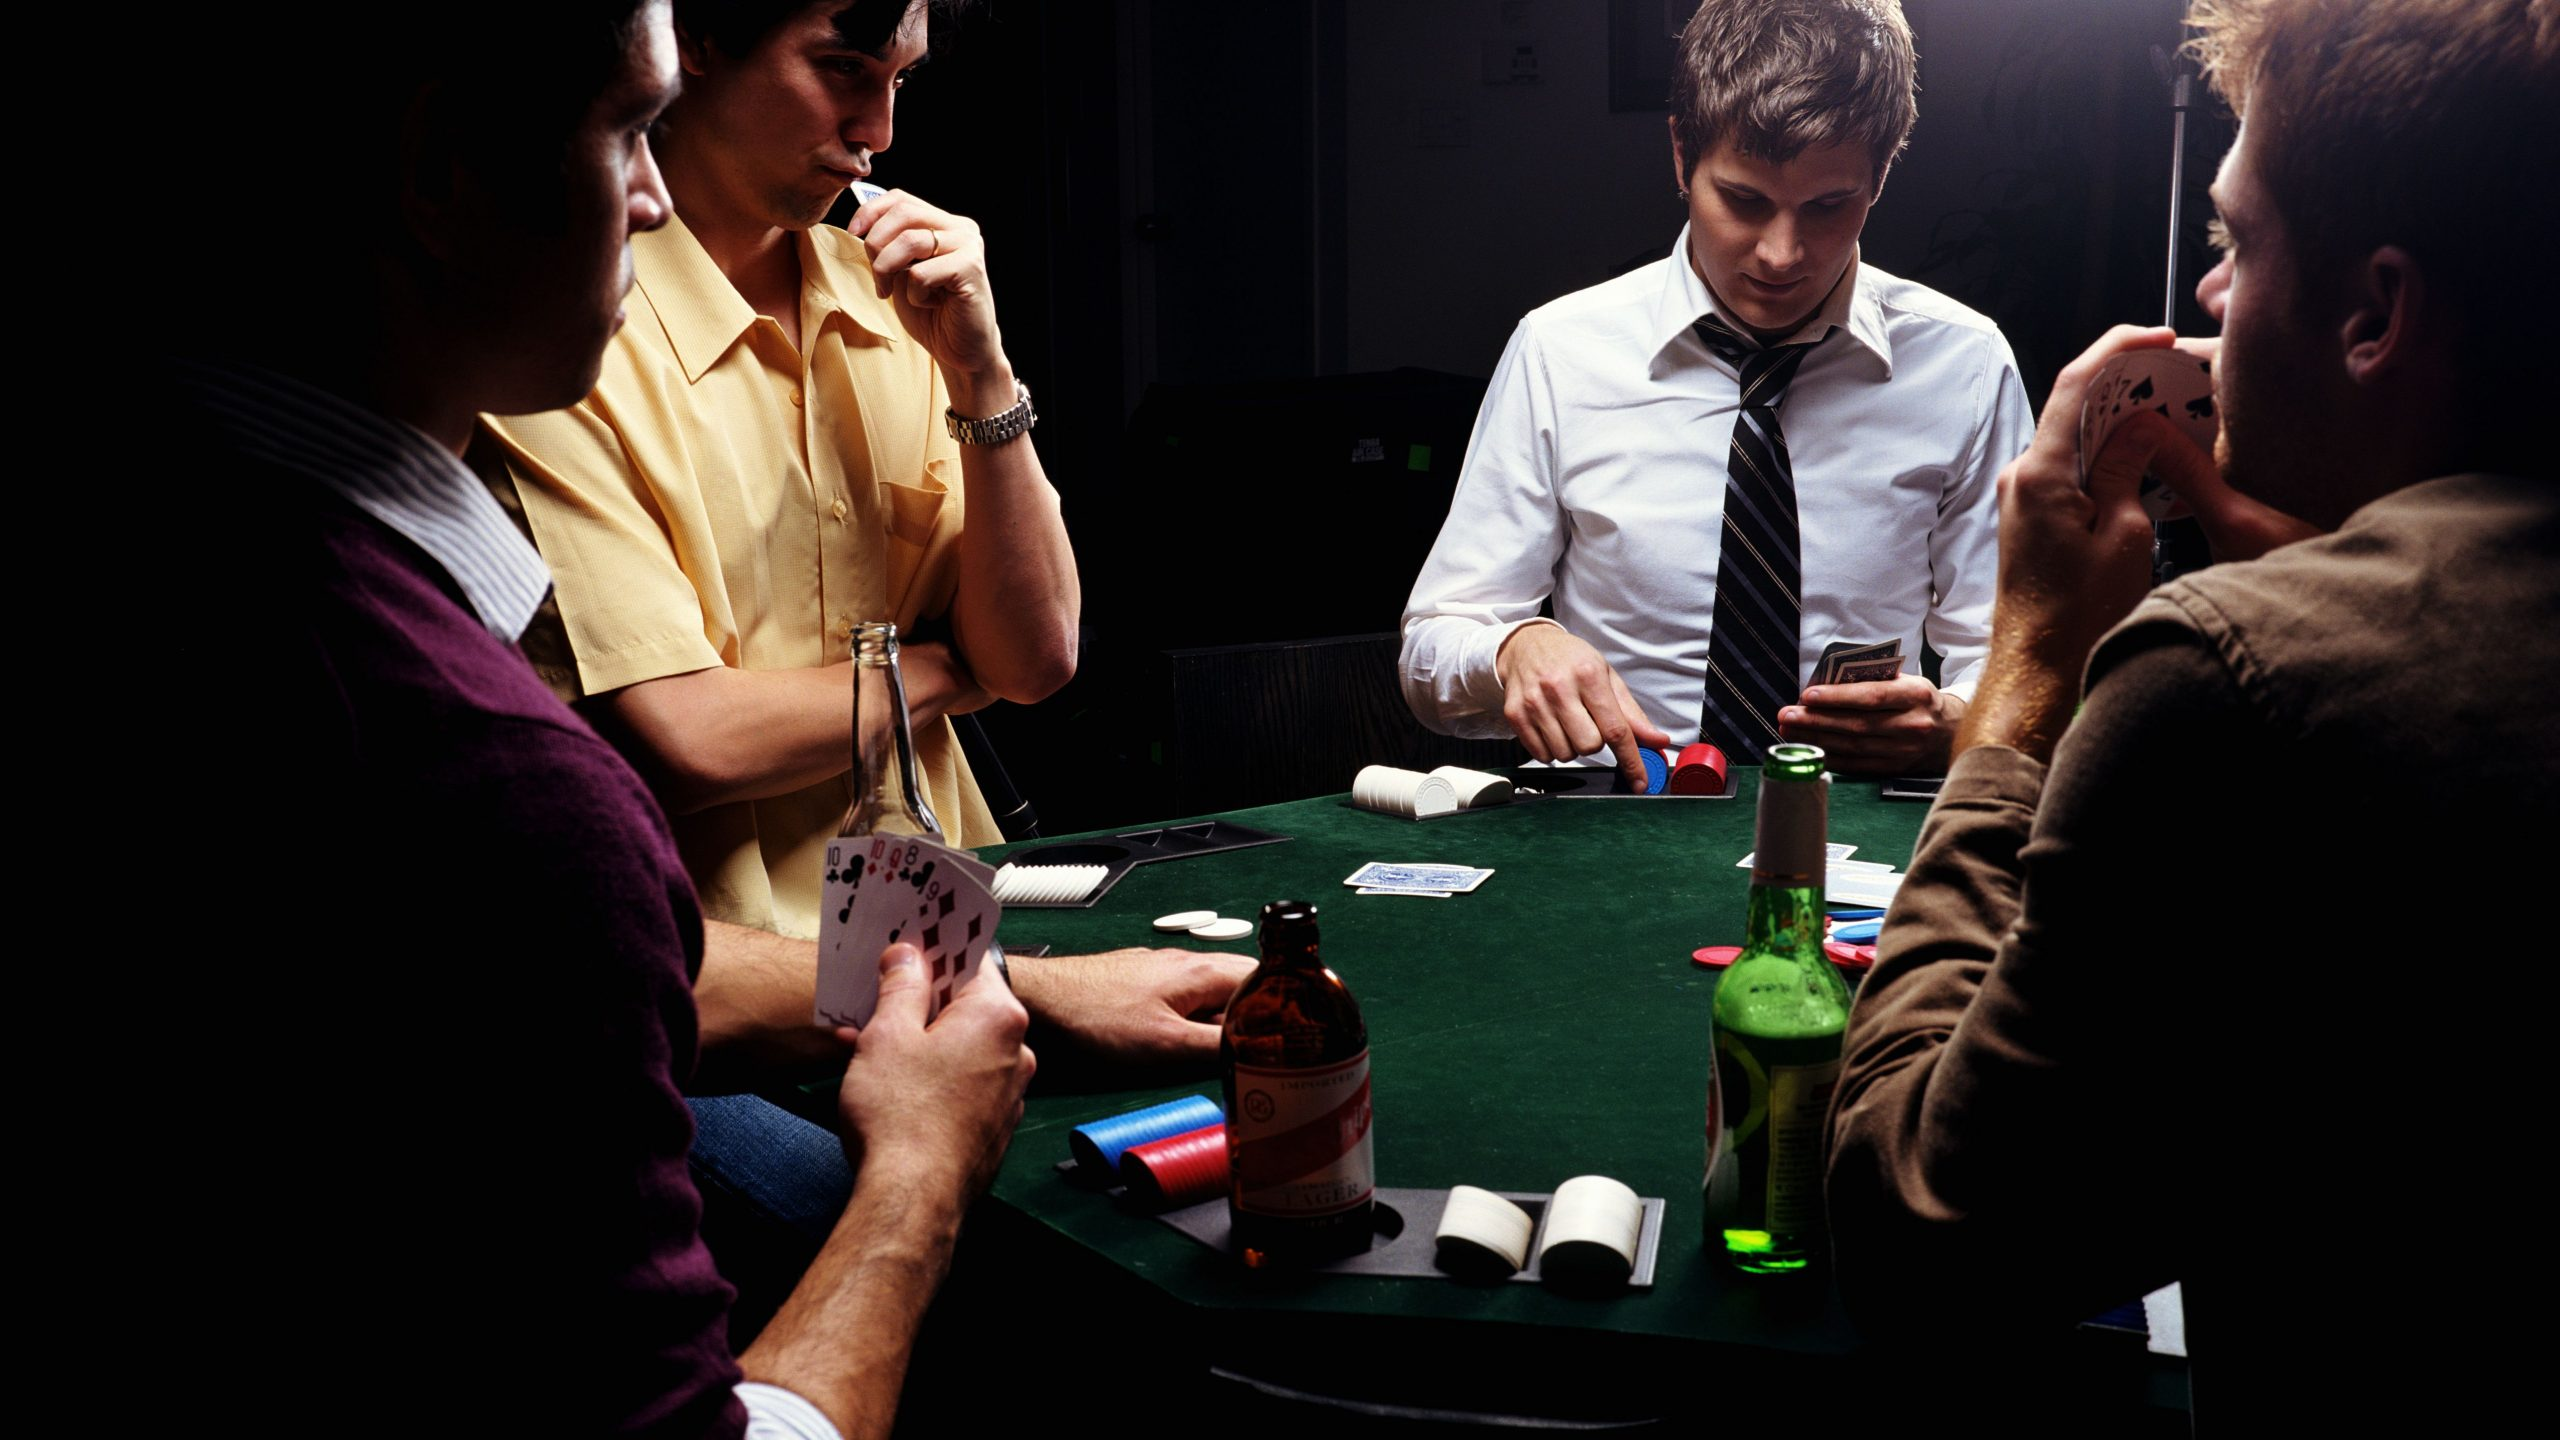 Learn How To Take The Headache Out Of Gambling